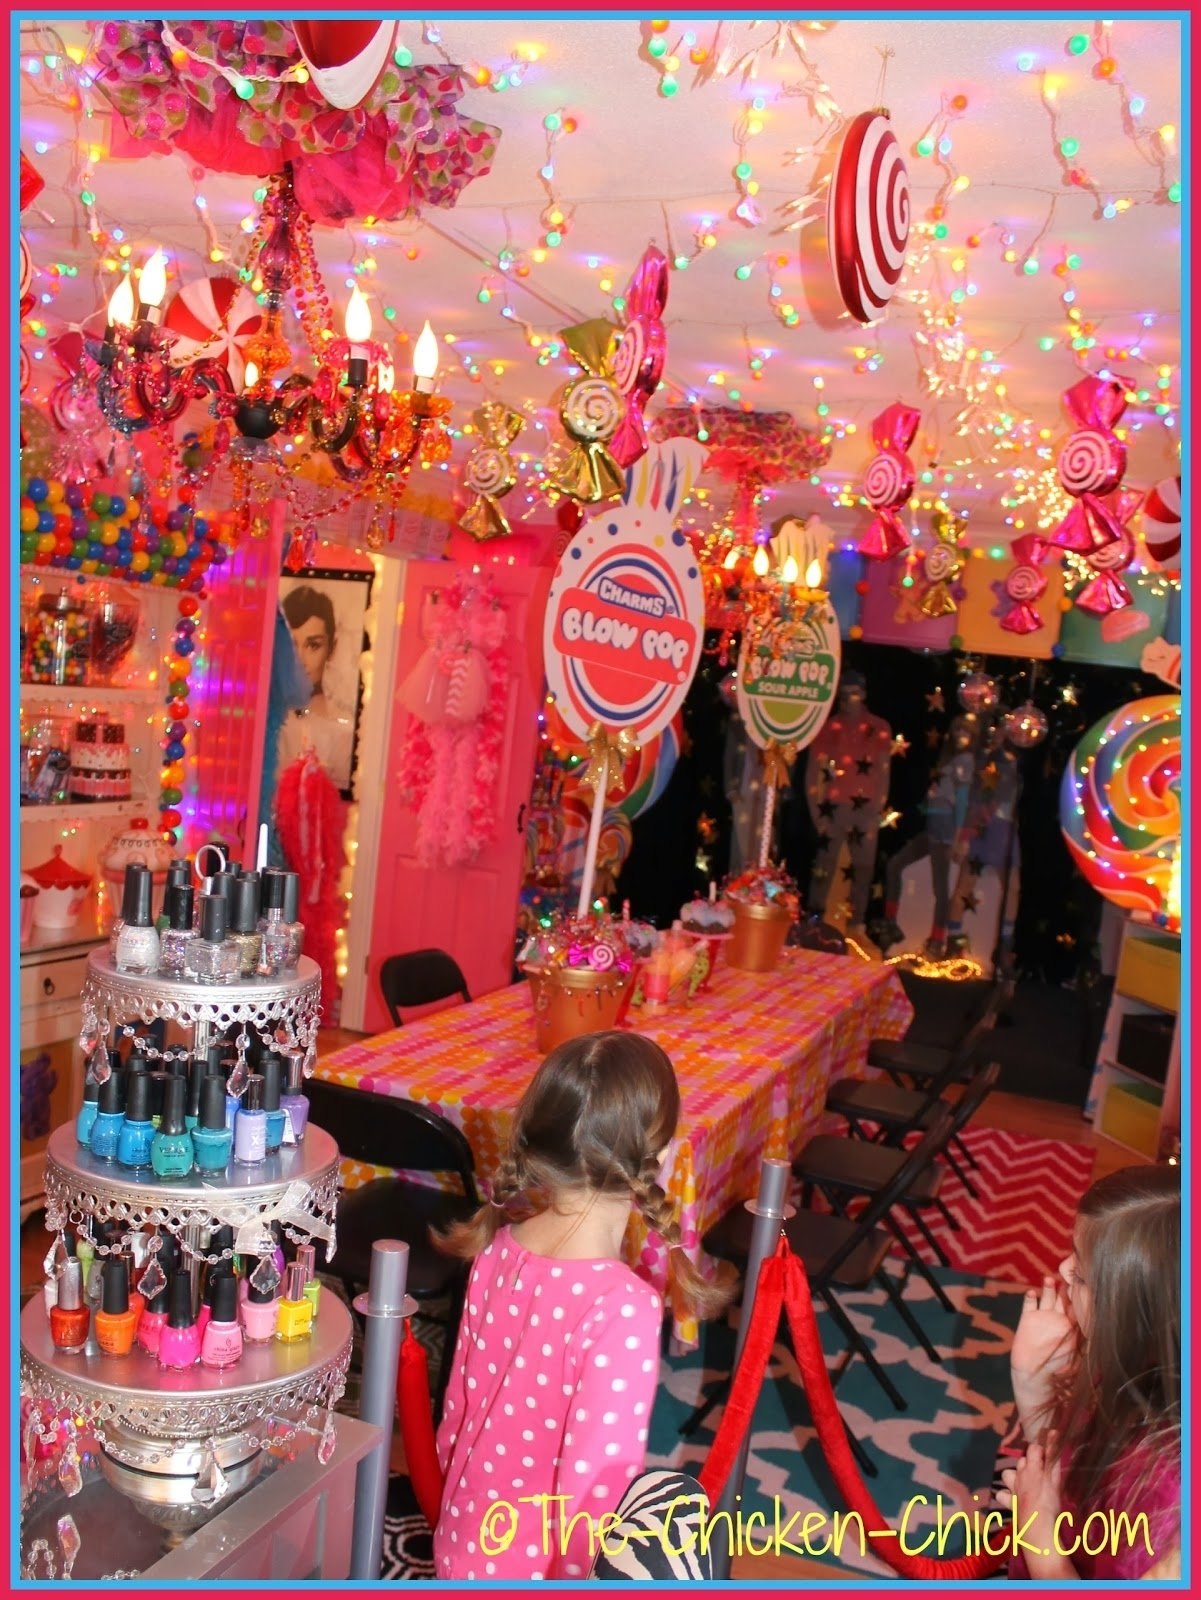 10 Most Popular 10 Year Old Girl Party Ideas spa birthday party ideas for 7 year olds pool design ideas 41 2021